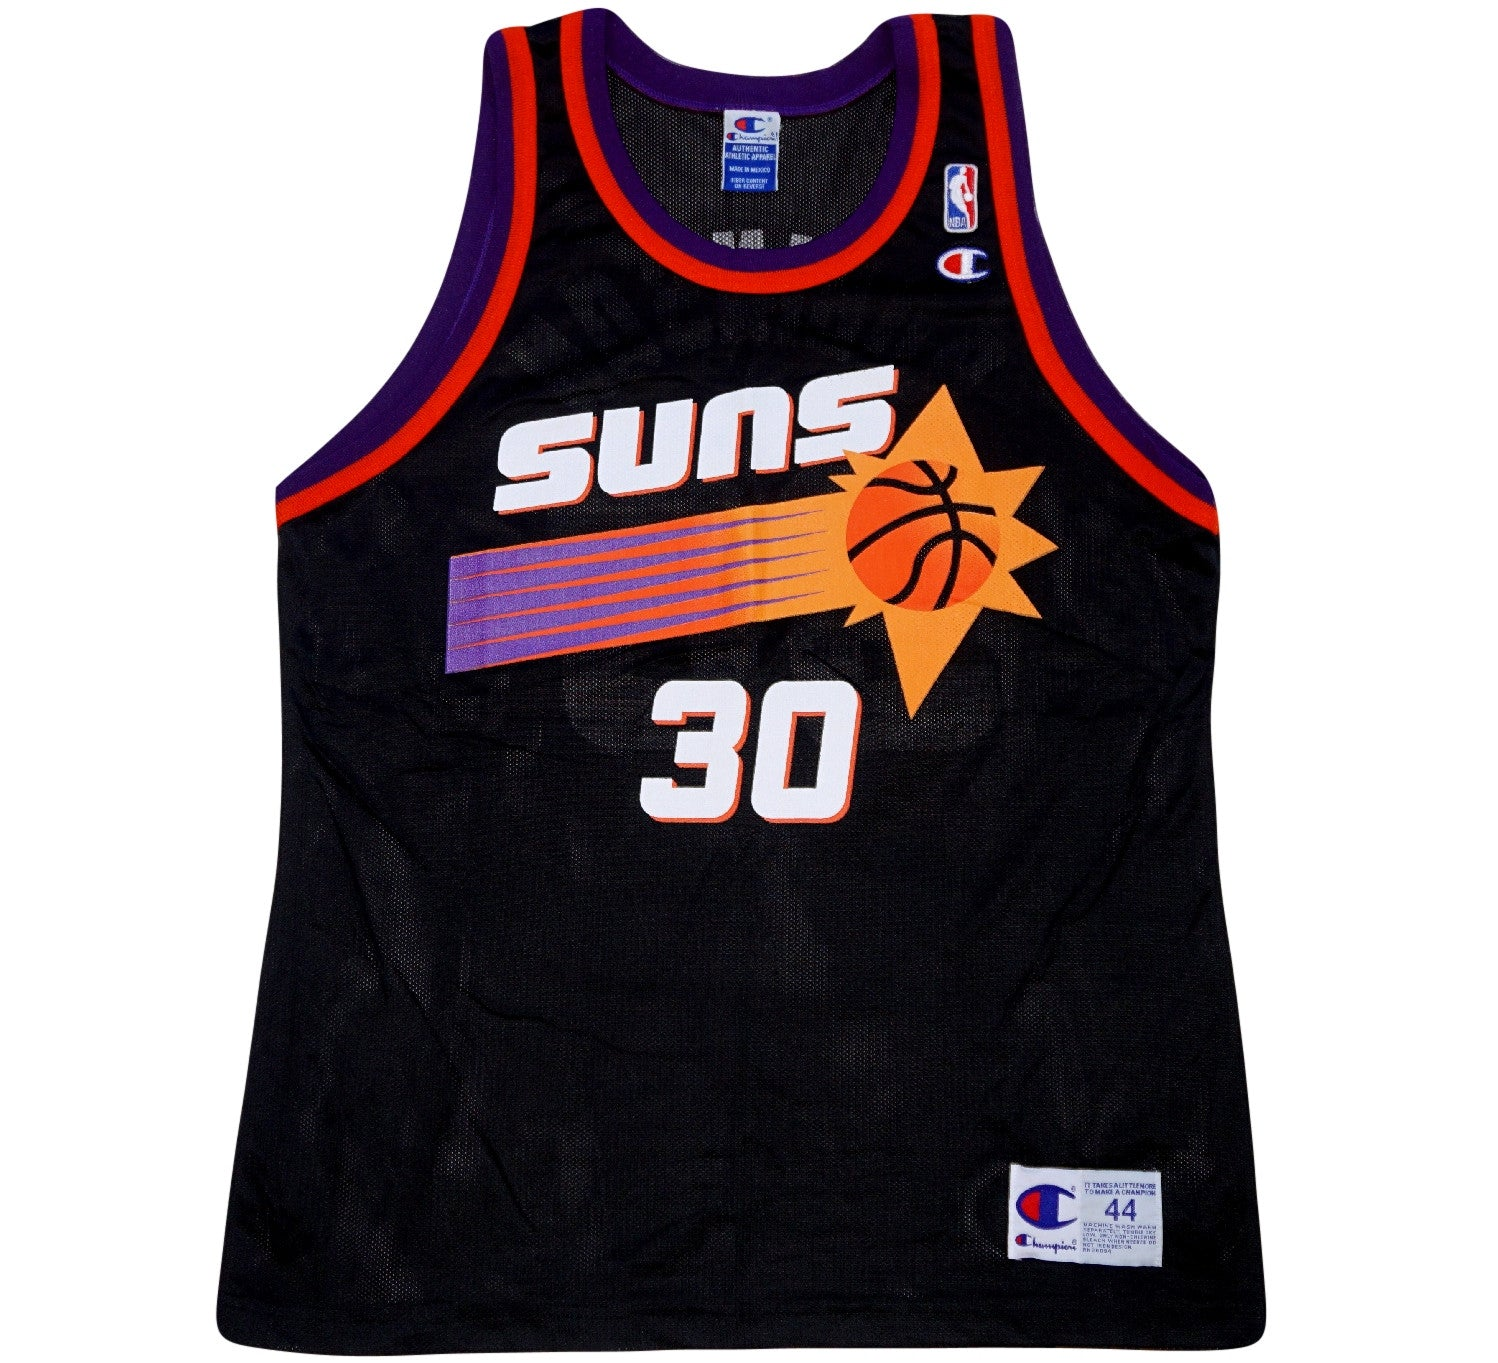 Cliff Robinson Suns Jersey - And Still